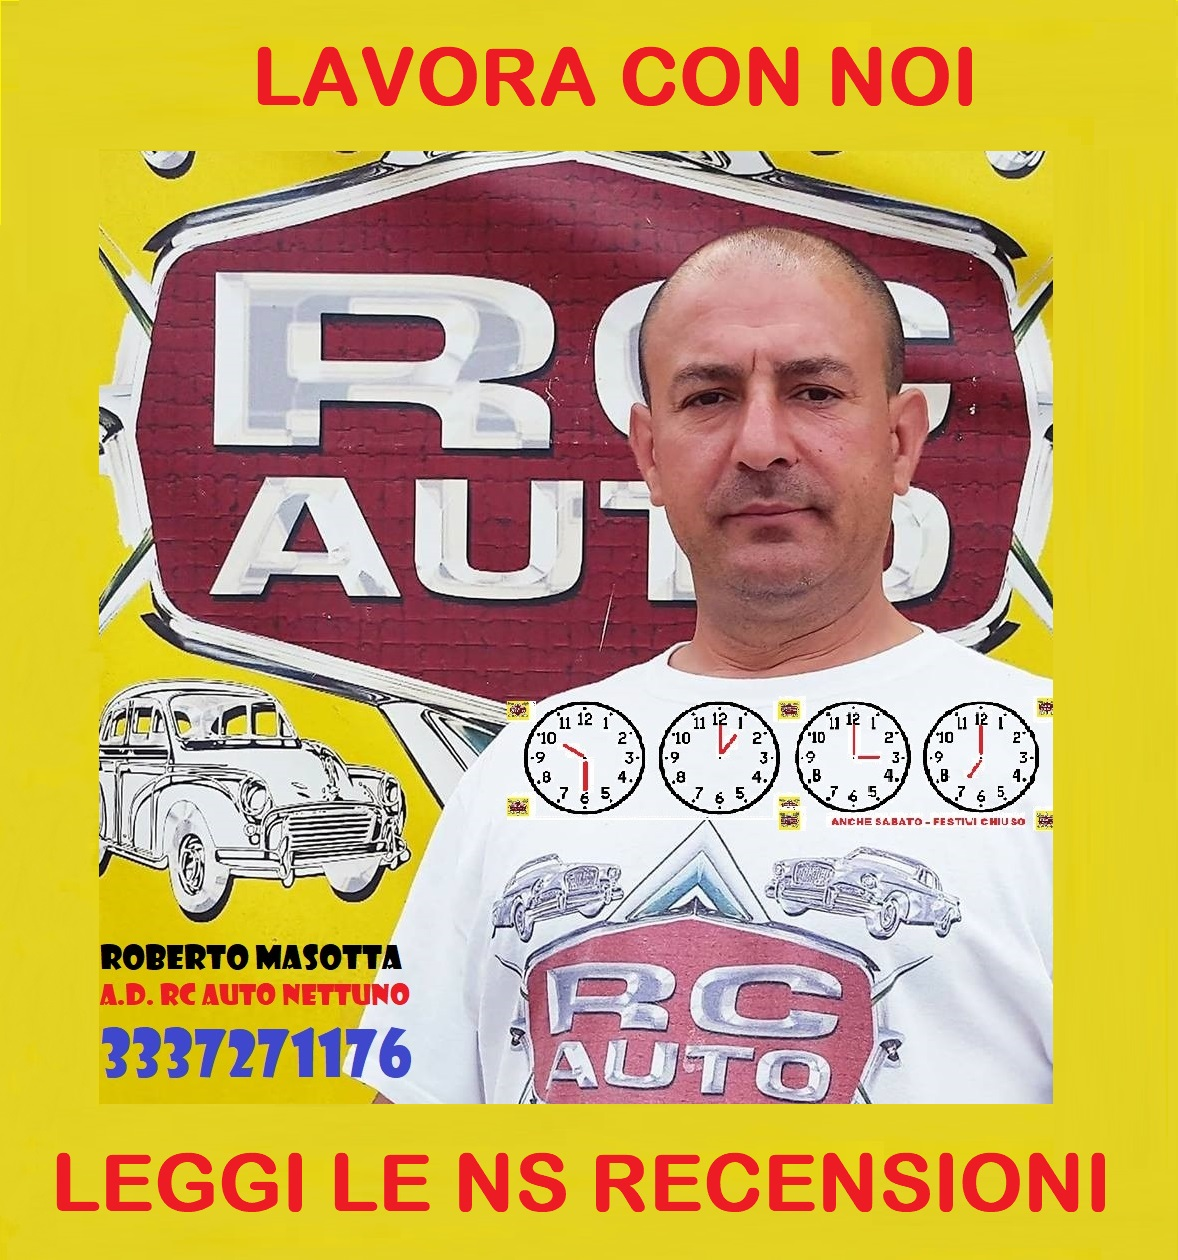 BACKGROUND ROBERTO MASOTTA